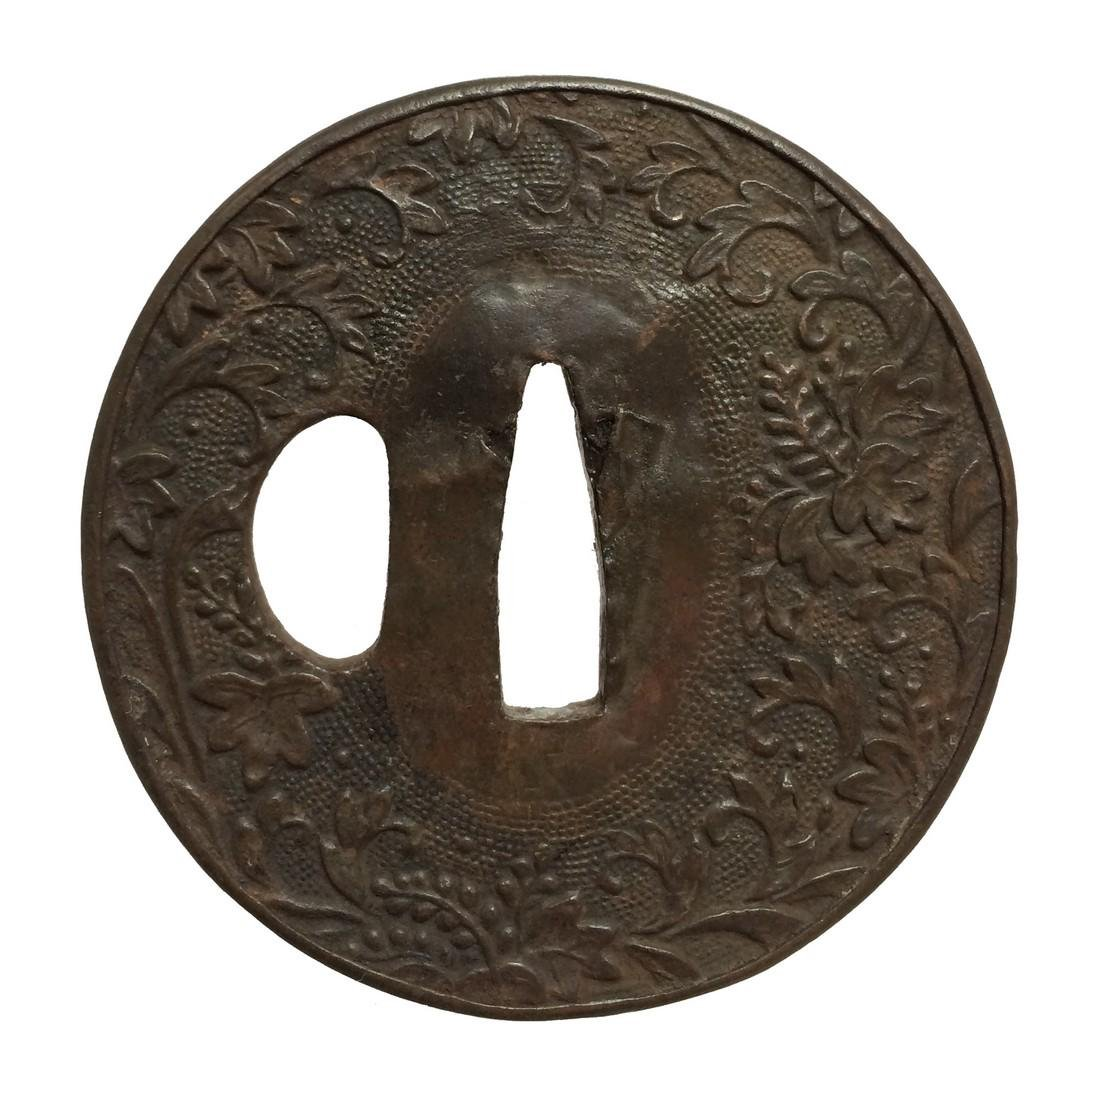 Repousse iron tsuba with floral design